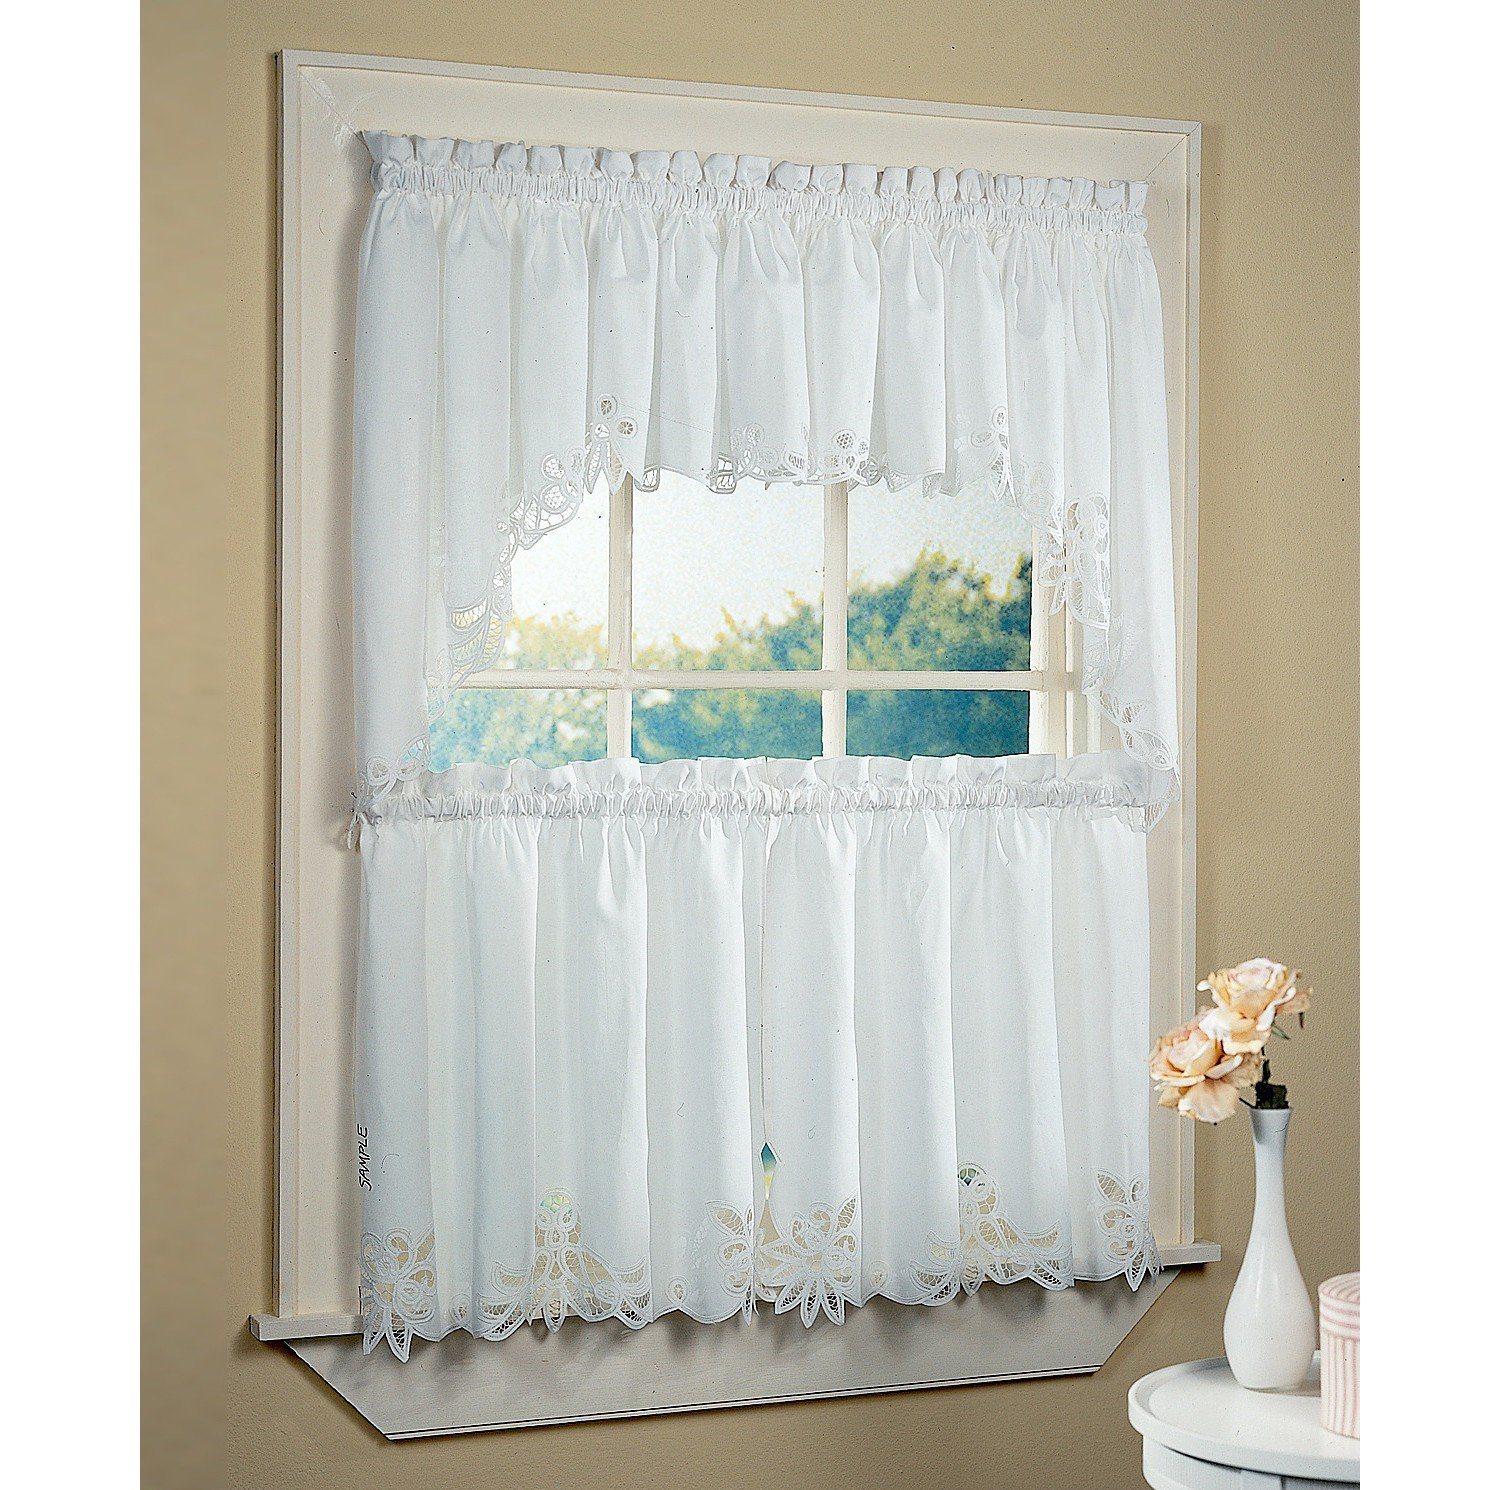 Half Window Curtains Ideas Homesfeed: curtain ideas for short windows